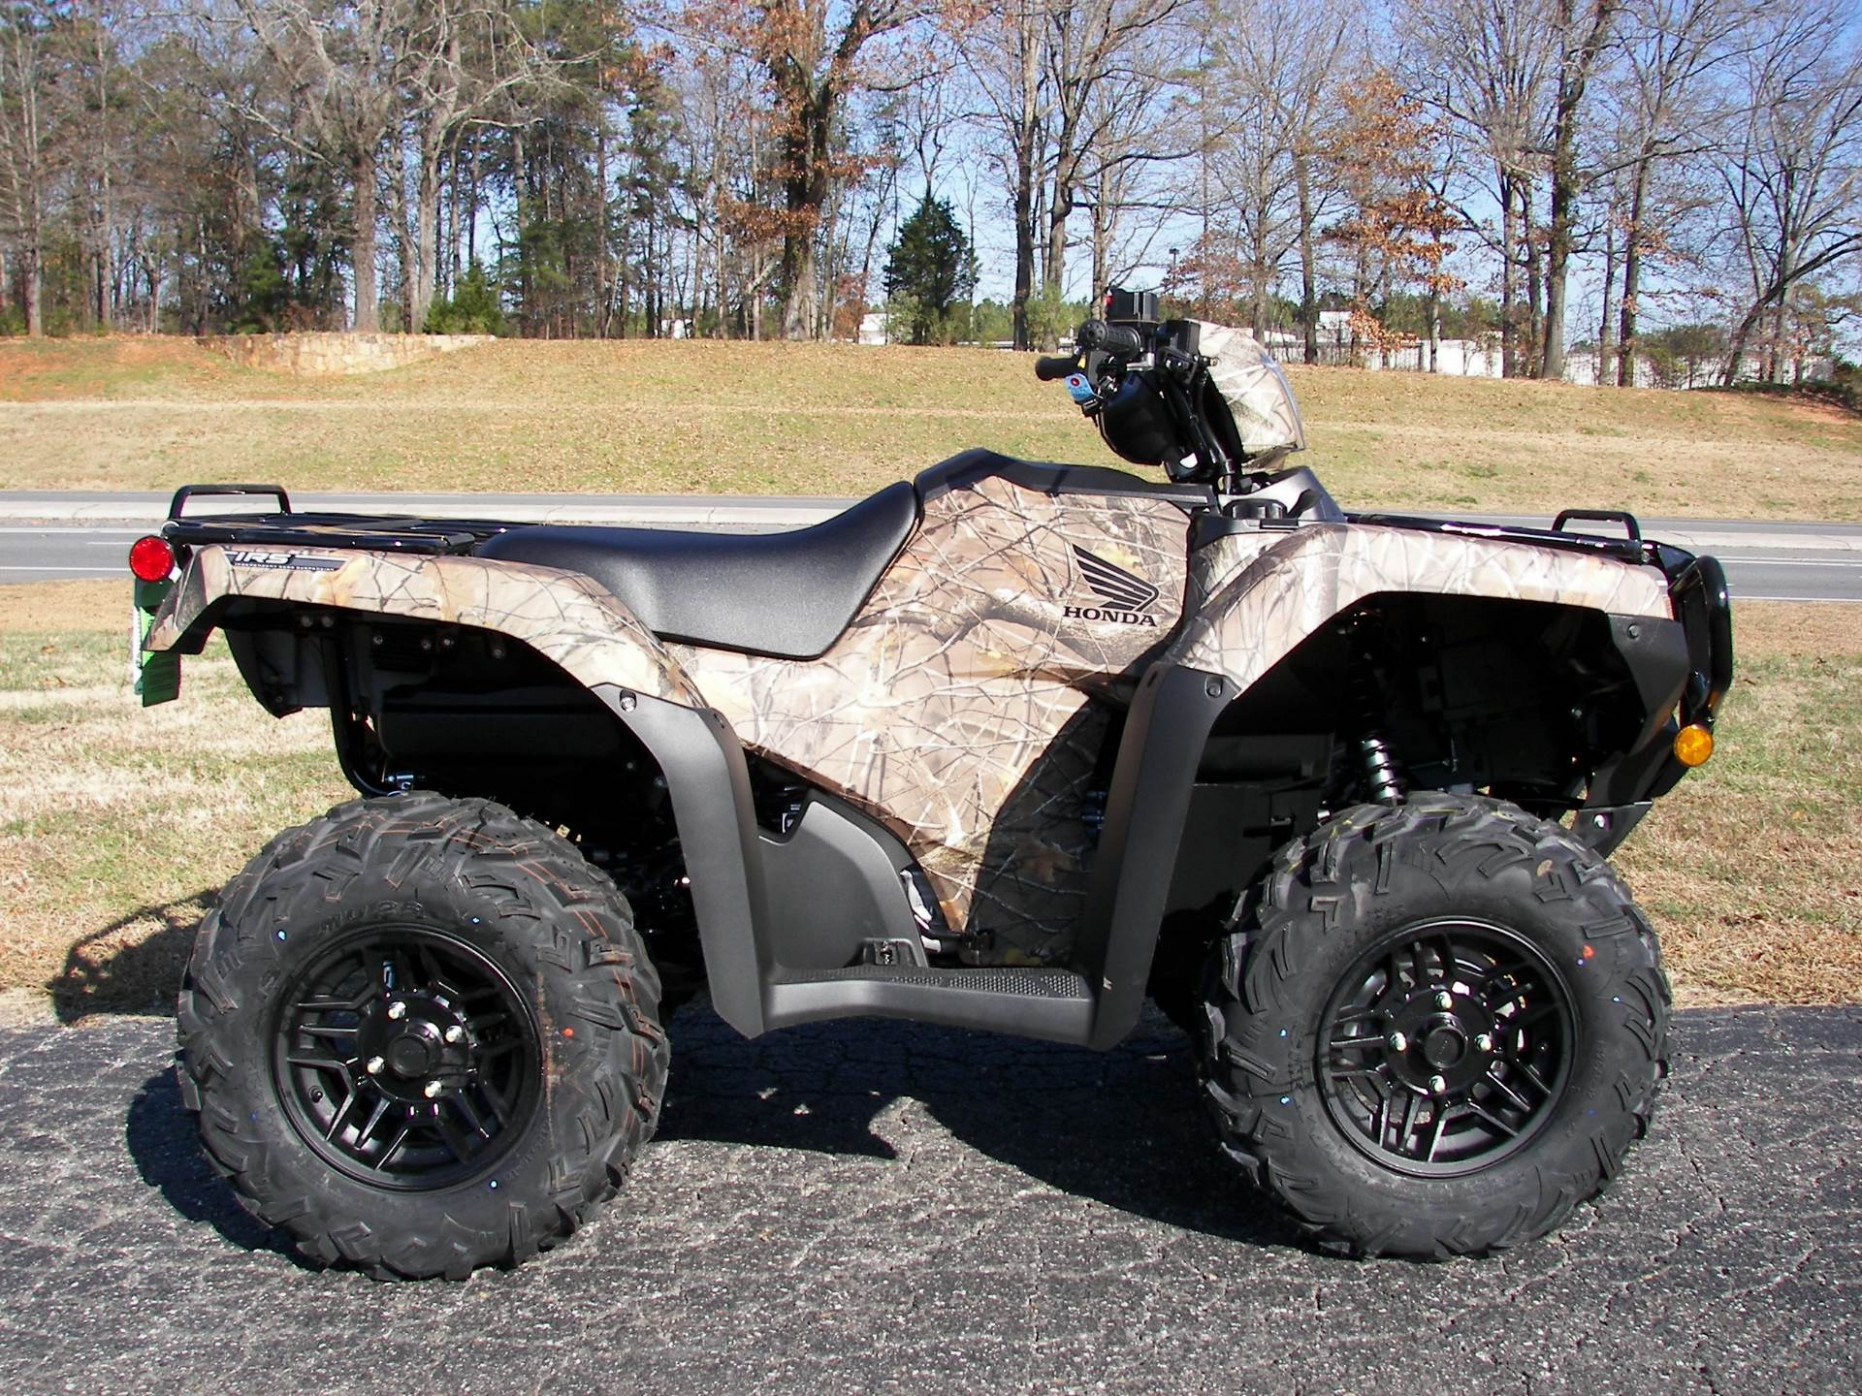 12 Honda FourTrax Foreman Rubicon 12x12 Automatic DCT EPS Deluxe in Shelby,  North Carolina - 2020 honda rubicon